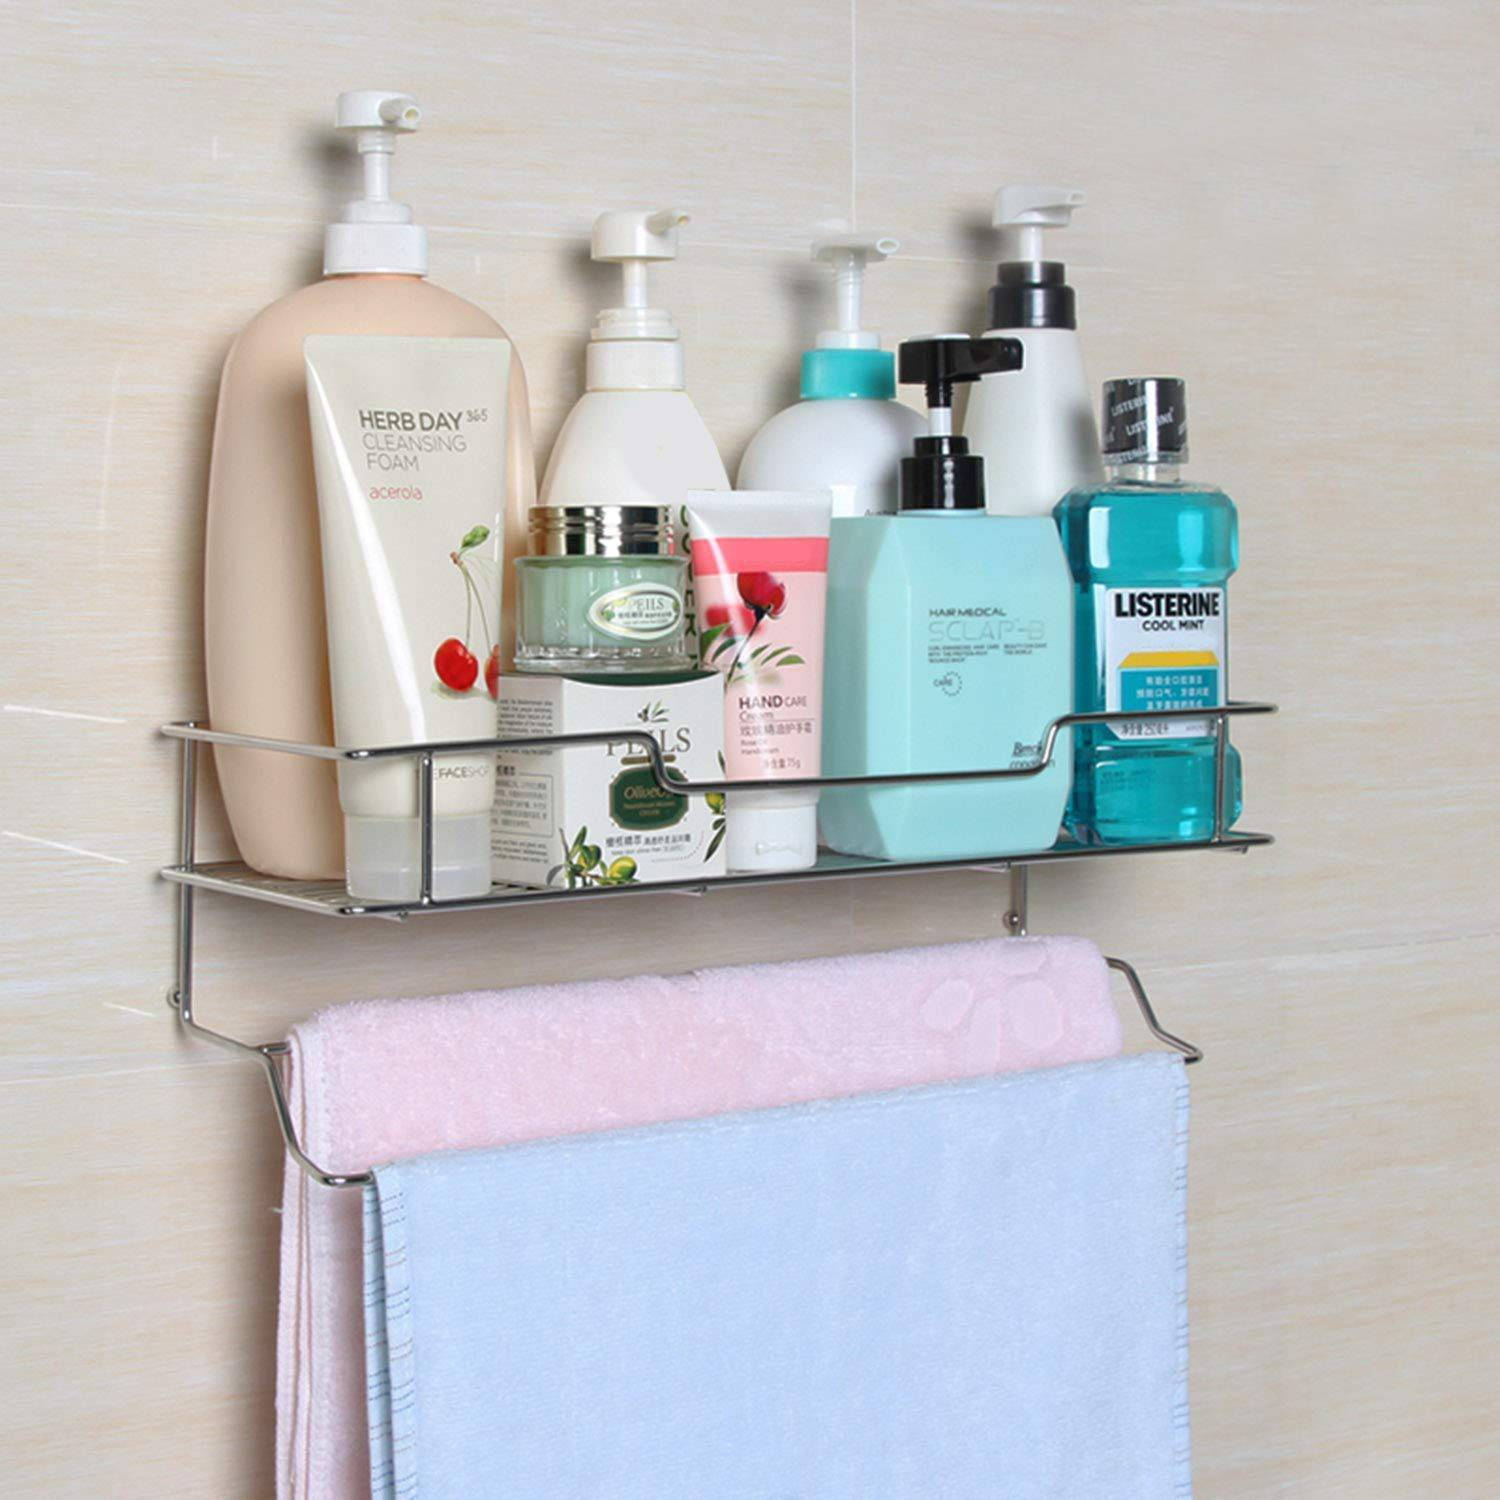 AND008540. Shelf with Towel Holder